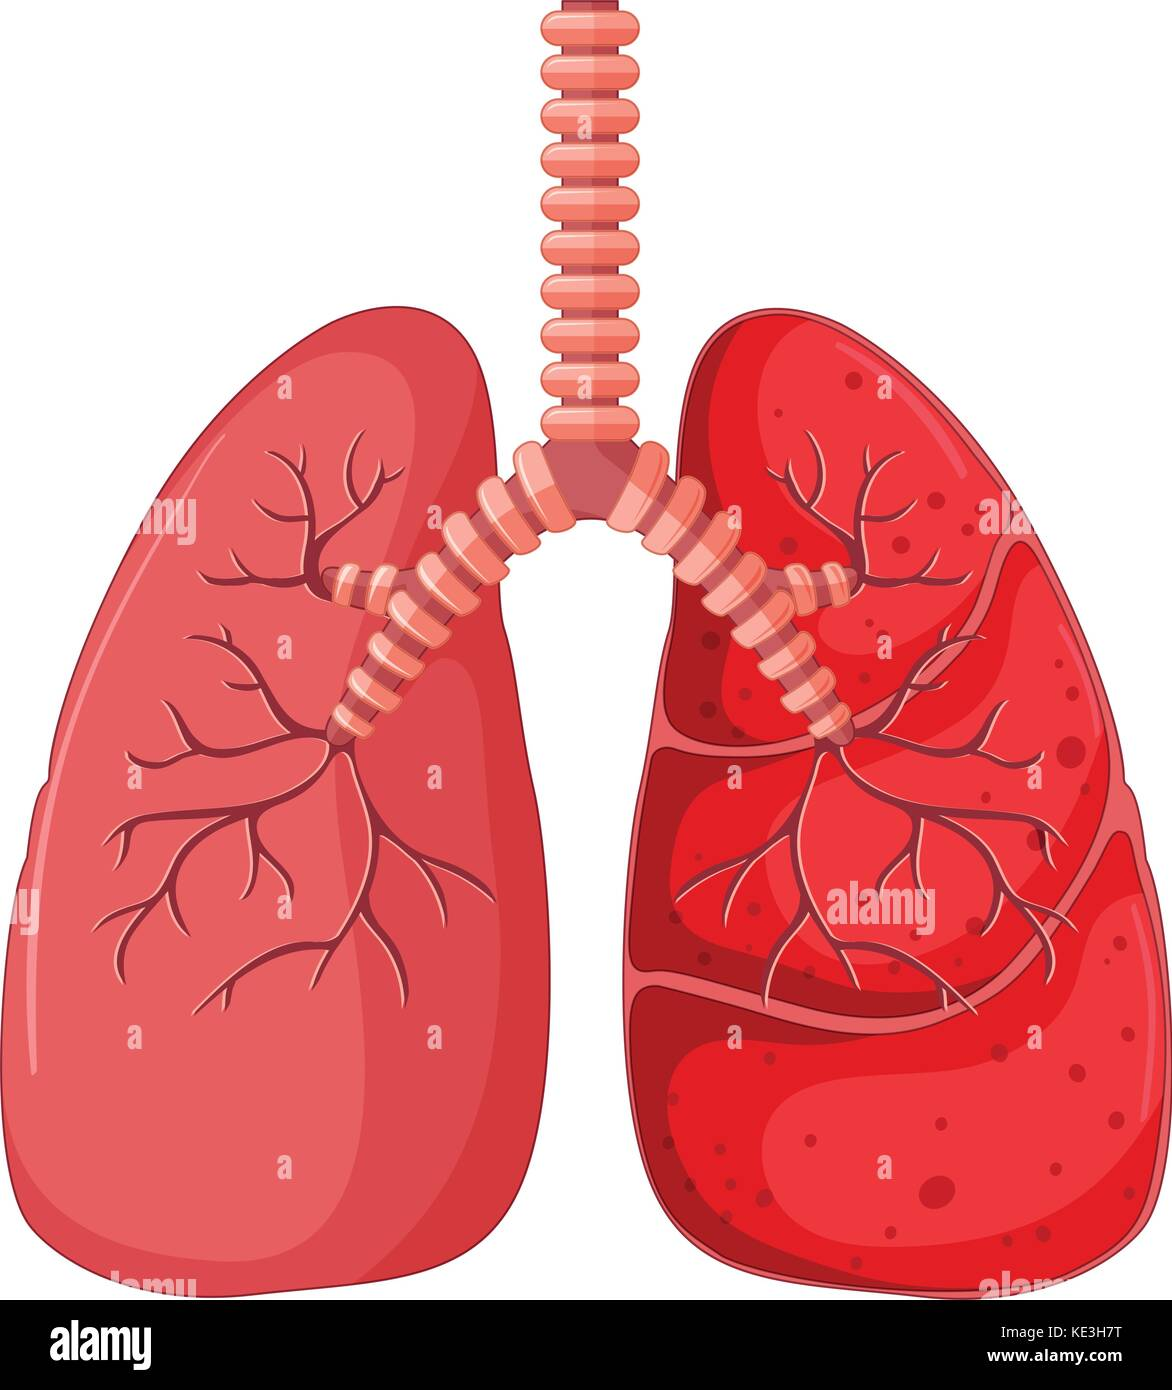 Lung diagram with pneumonia illustration - Stock Image